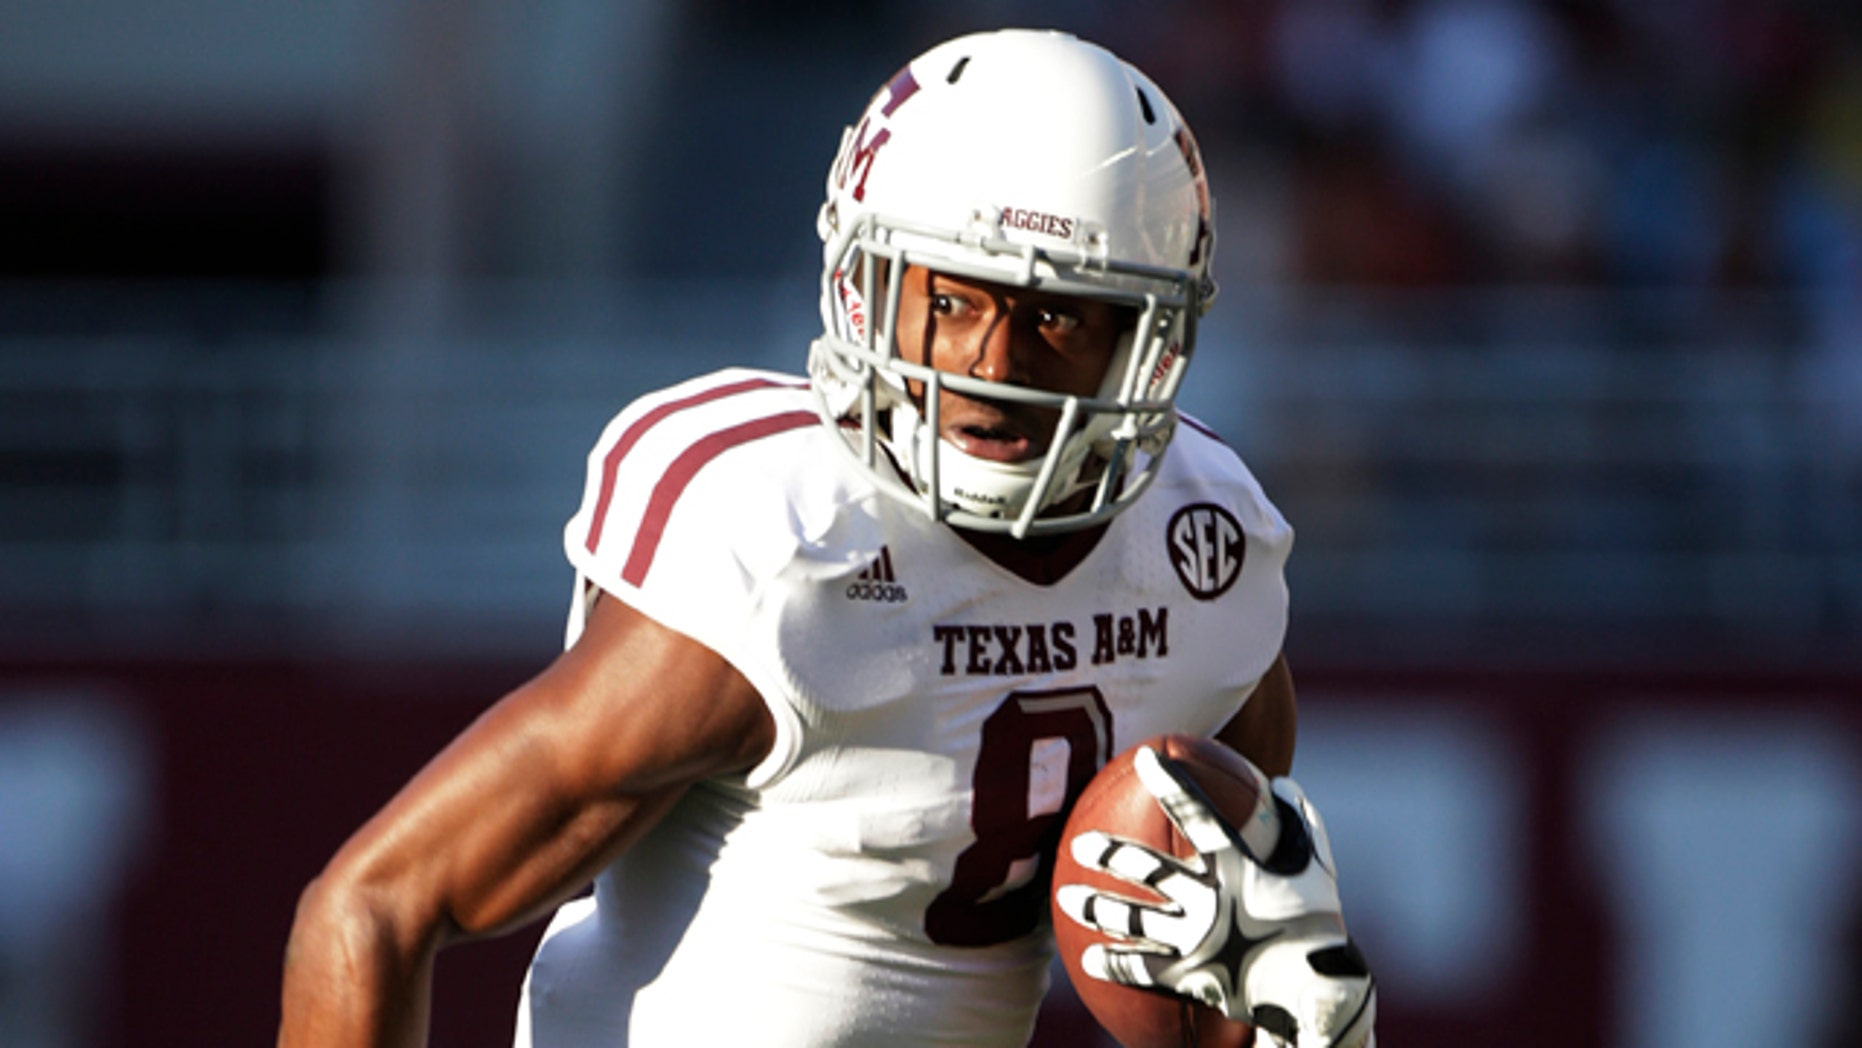 Nov. 10, 2012: In this file photo, Texas A&M wide receiver Thomas Johnson (8) carries for extra yardage after a reception during an NCAA college football game in Tuscaloosa, Ala.